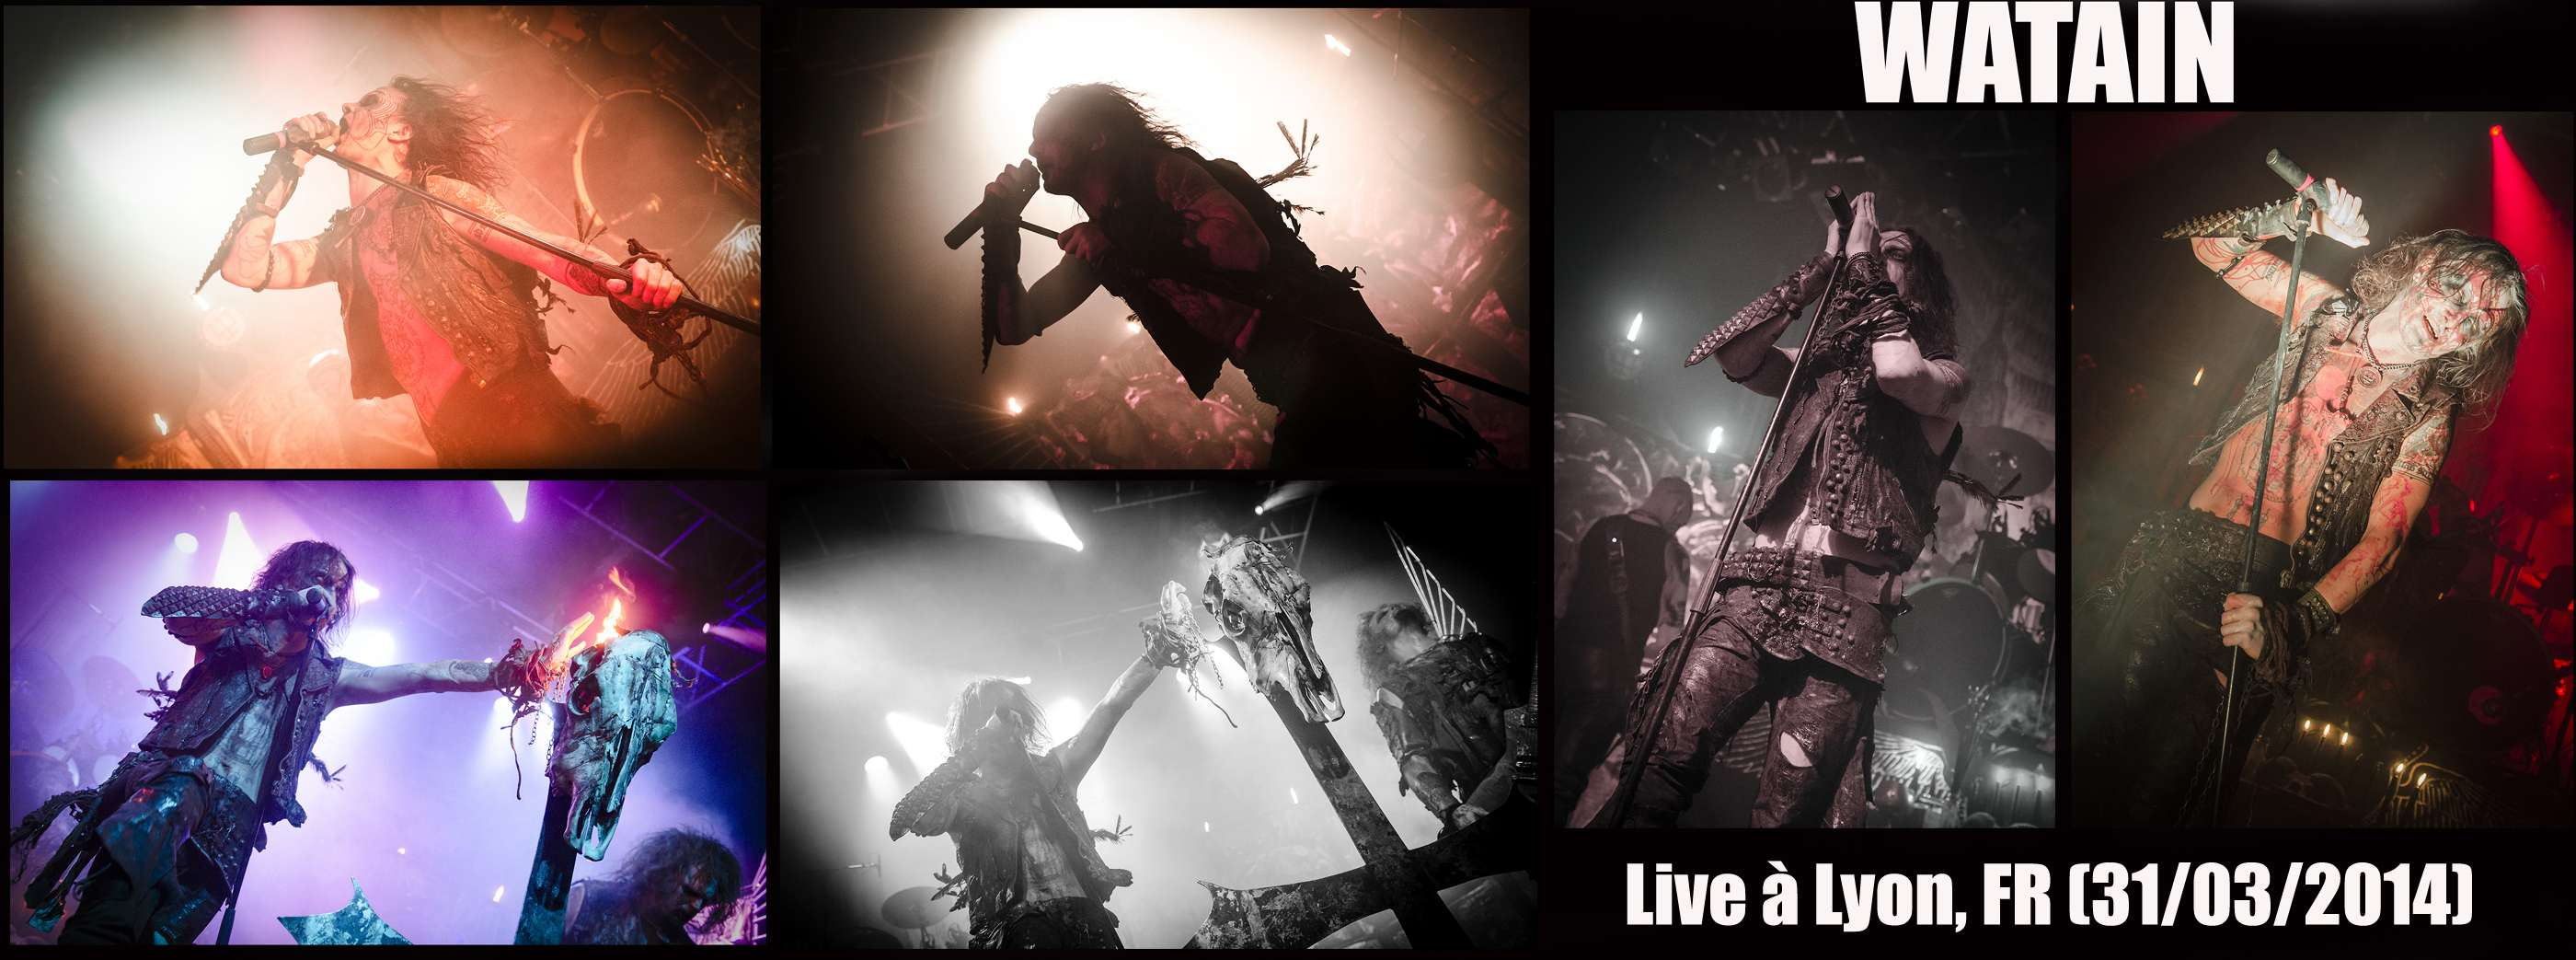 Mes petits montages photos ... - Page 6 Watain10